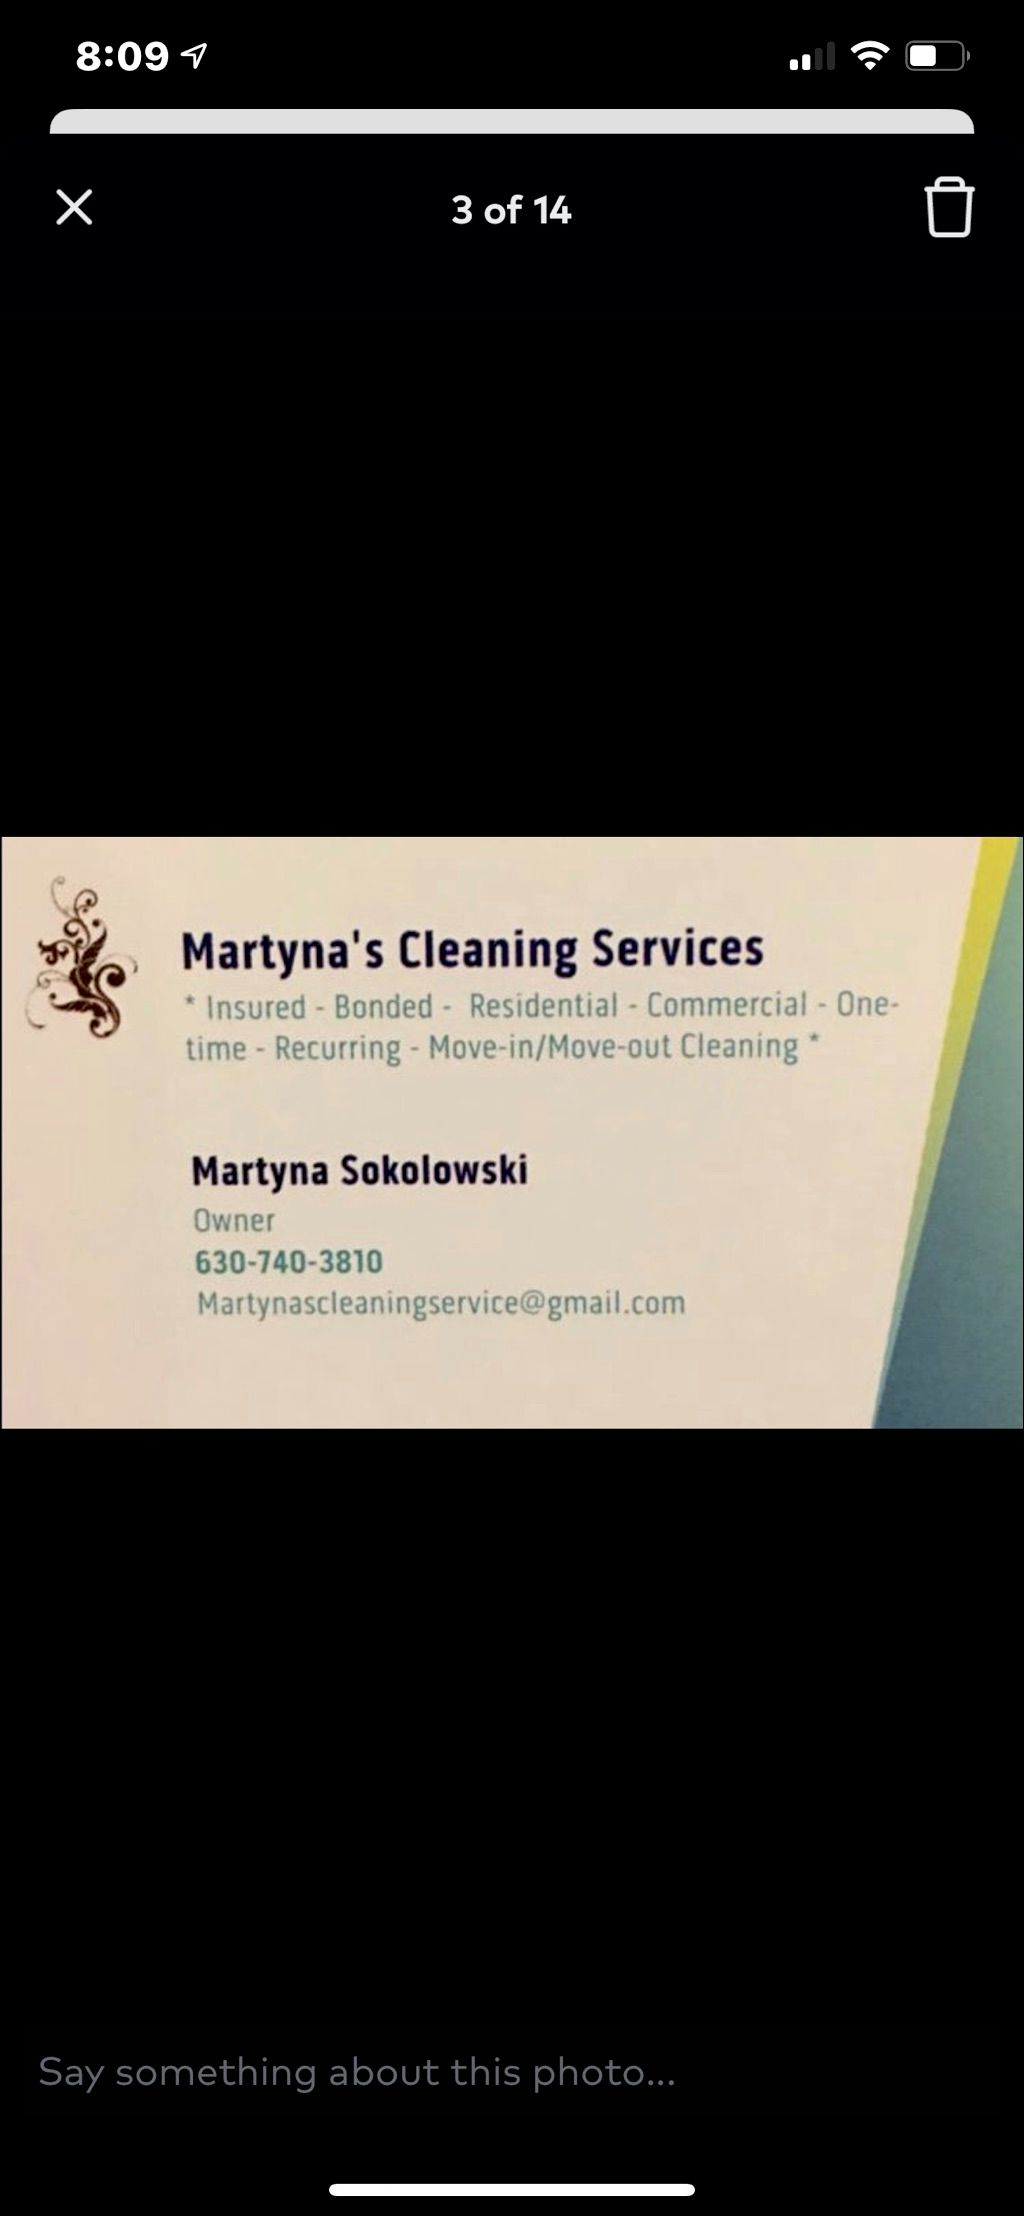 Martyna's Cleaning Services